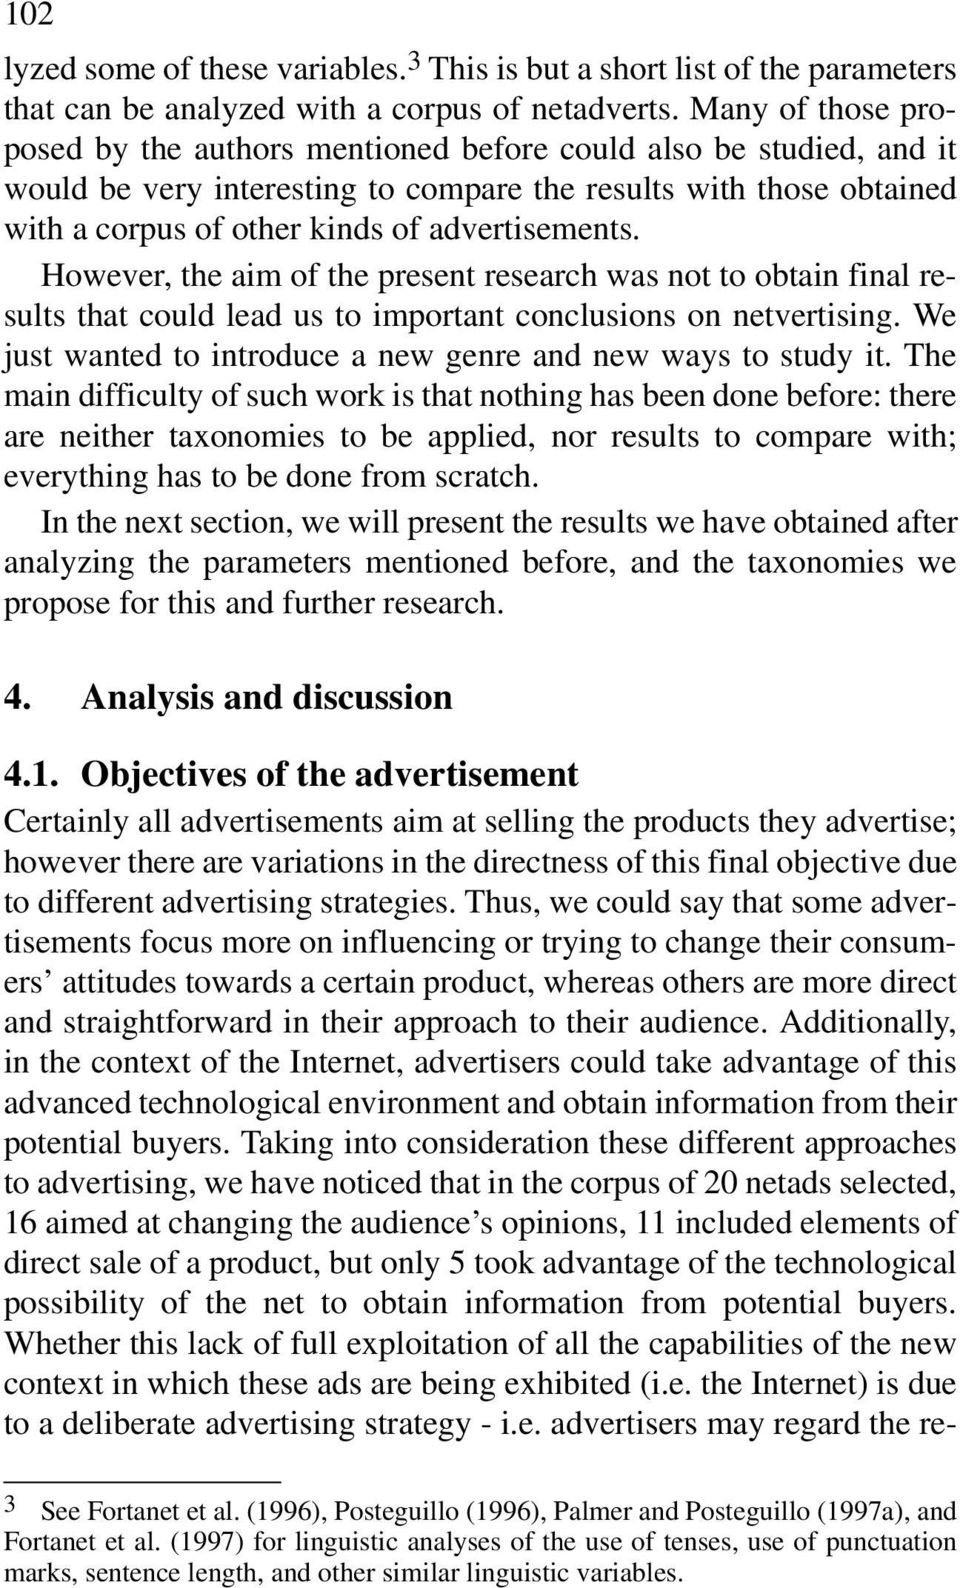 advertisements. However, the aim of the present research was not to obtain final results that could lead us to important conclusions on netvertising.